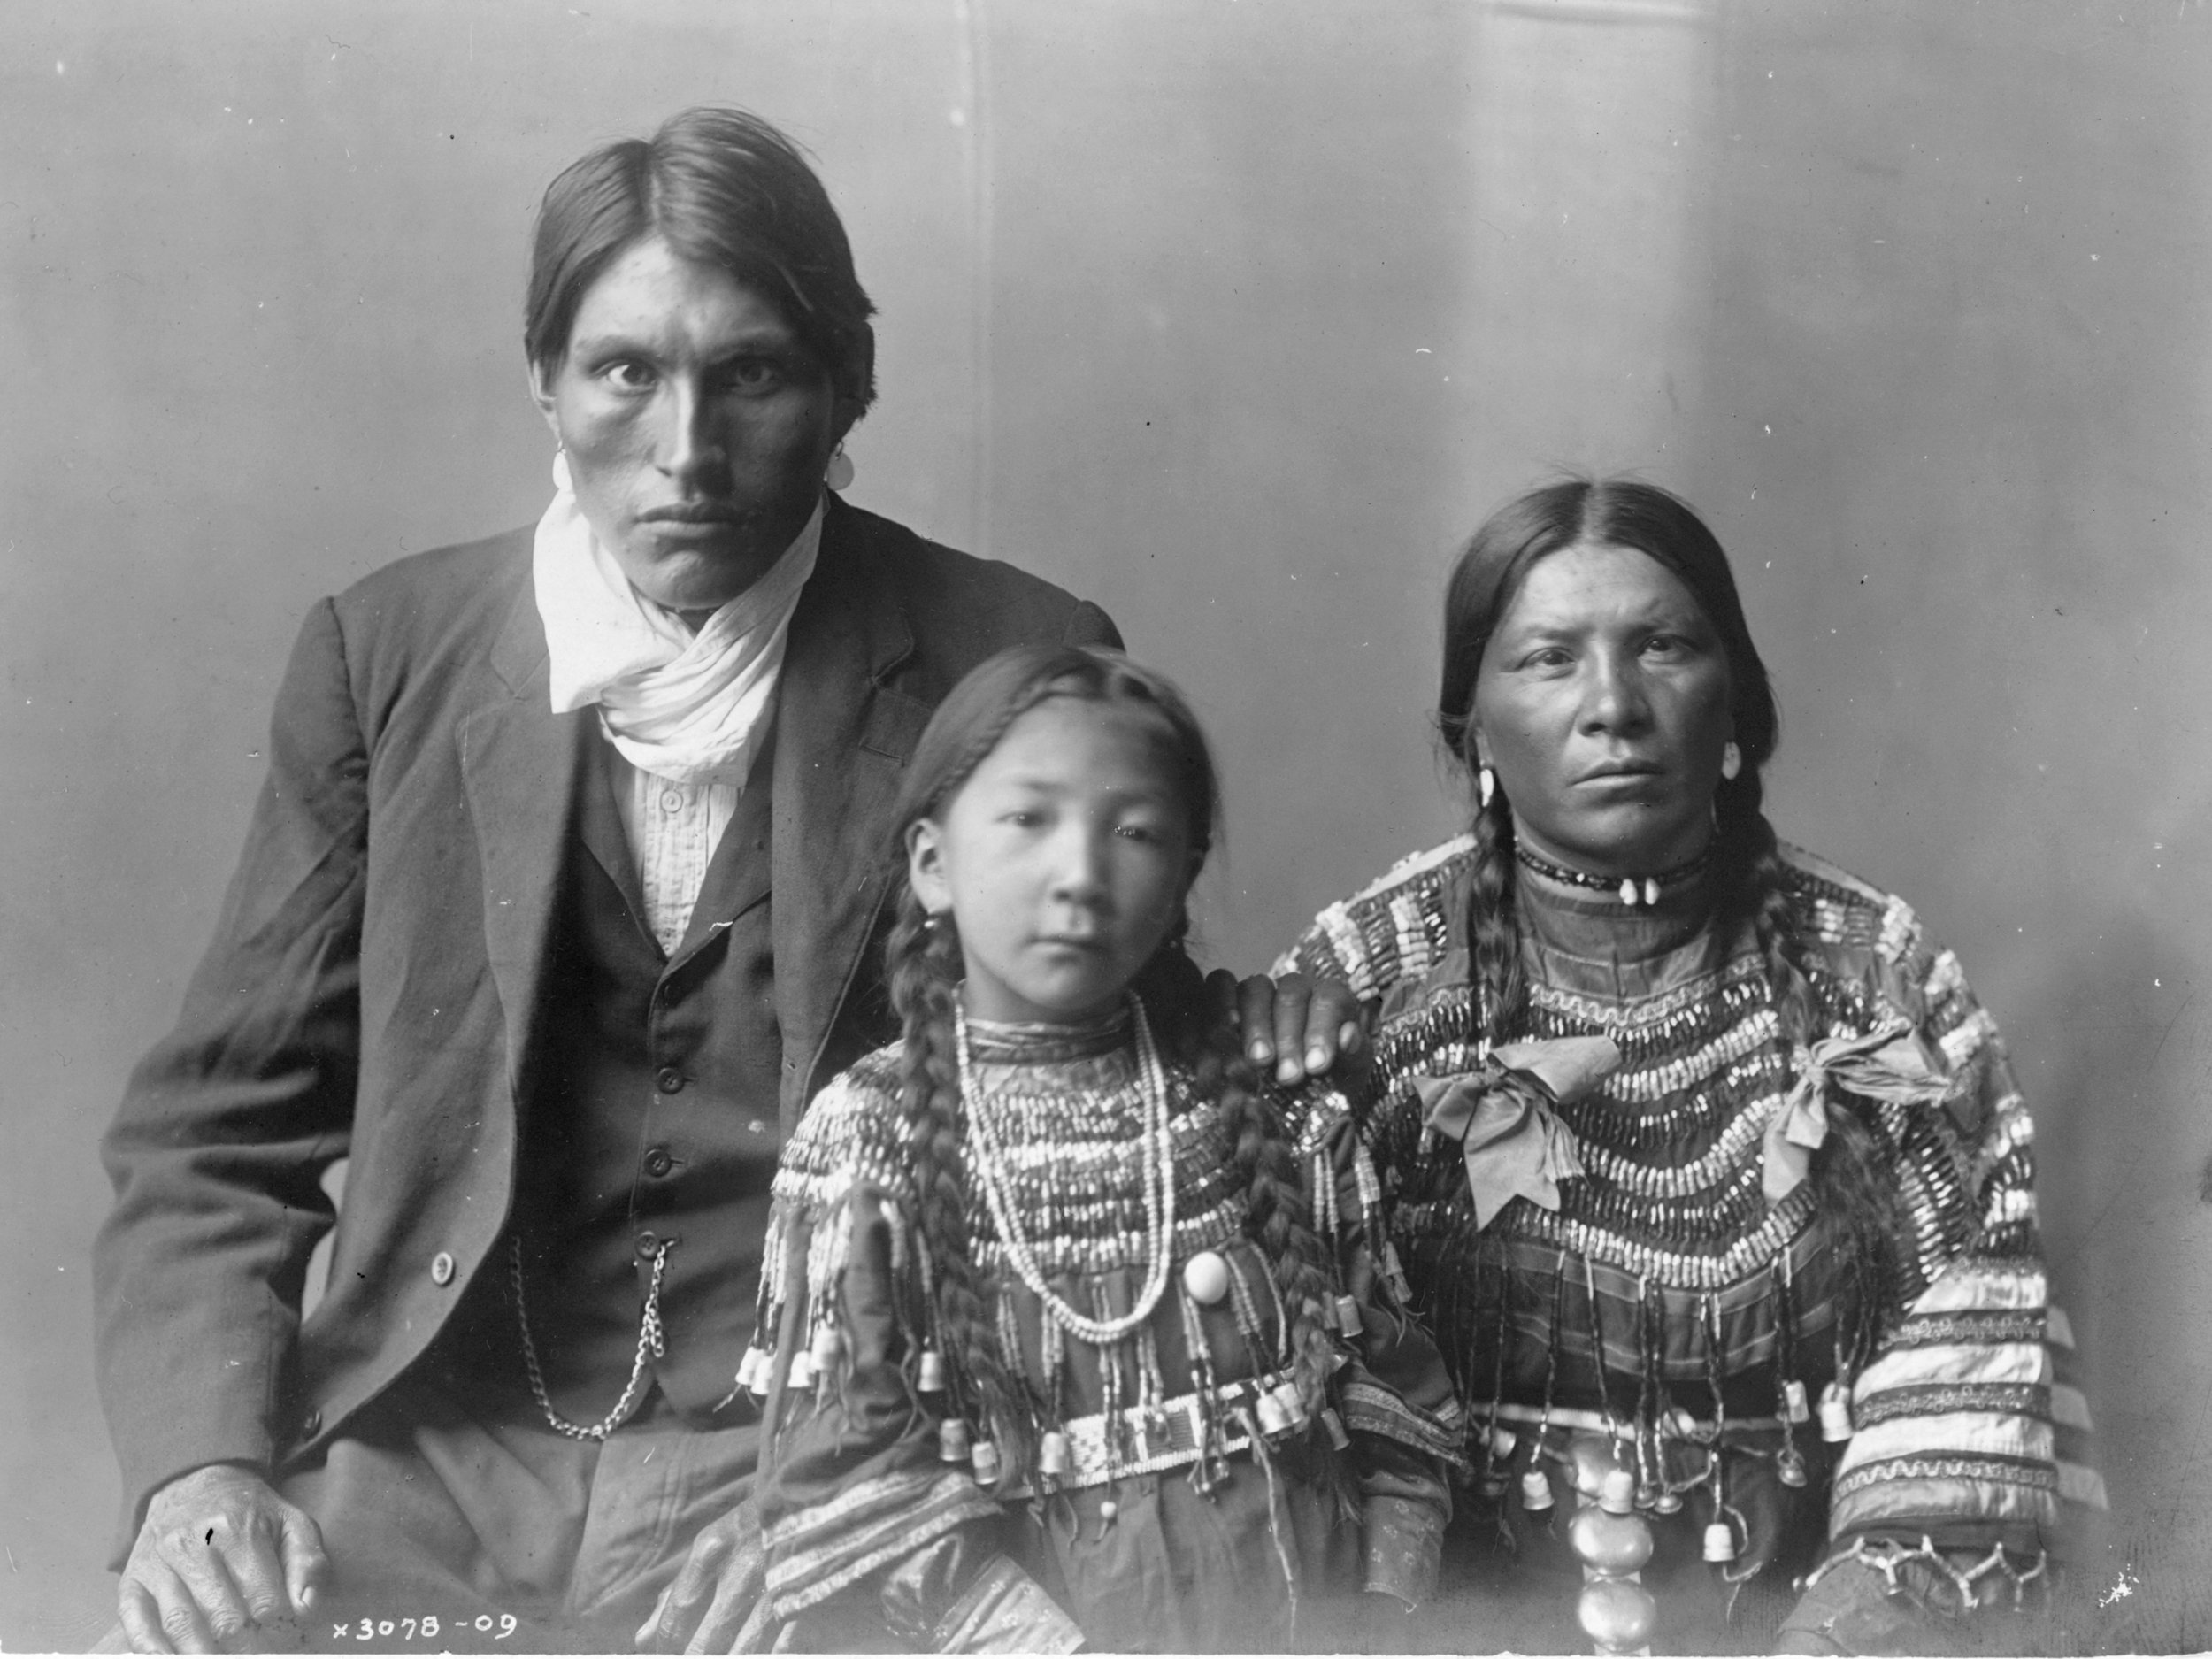 Original photo by Edward S. Curtis (1868-1952) in 1910.    Photo credit: Library of Congress